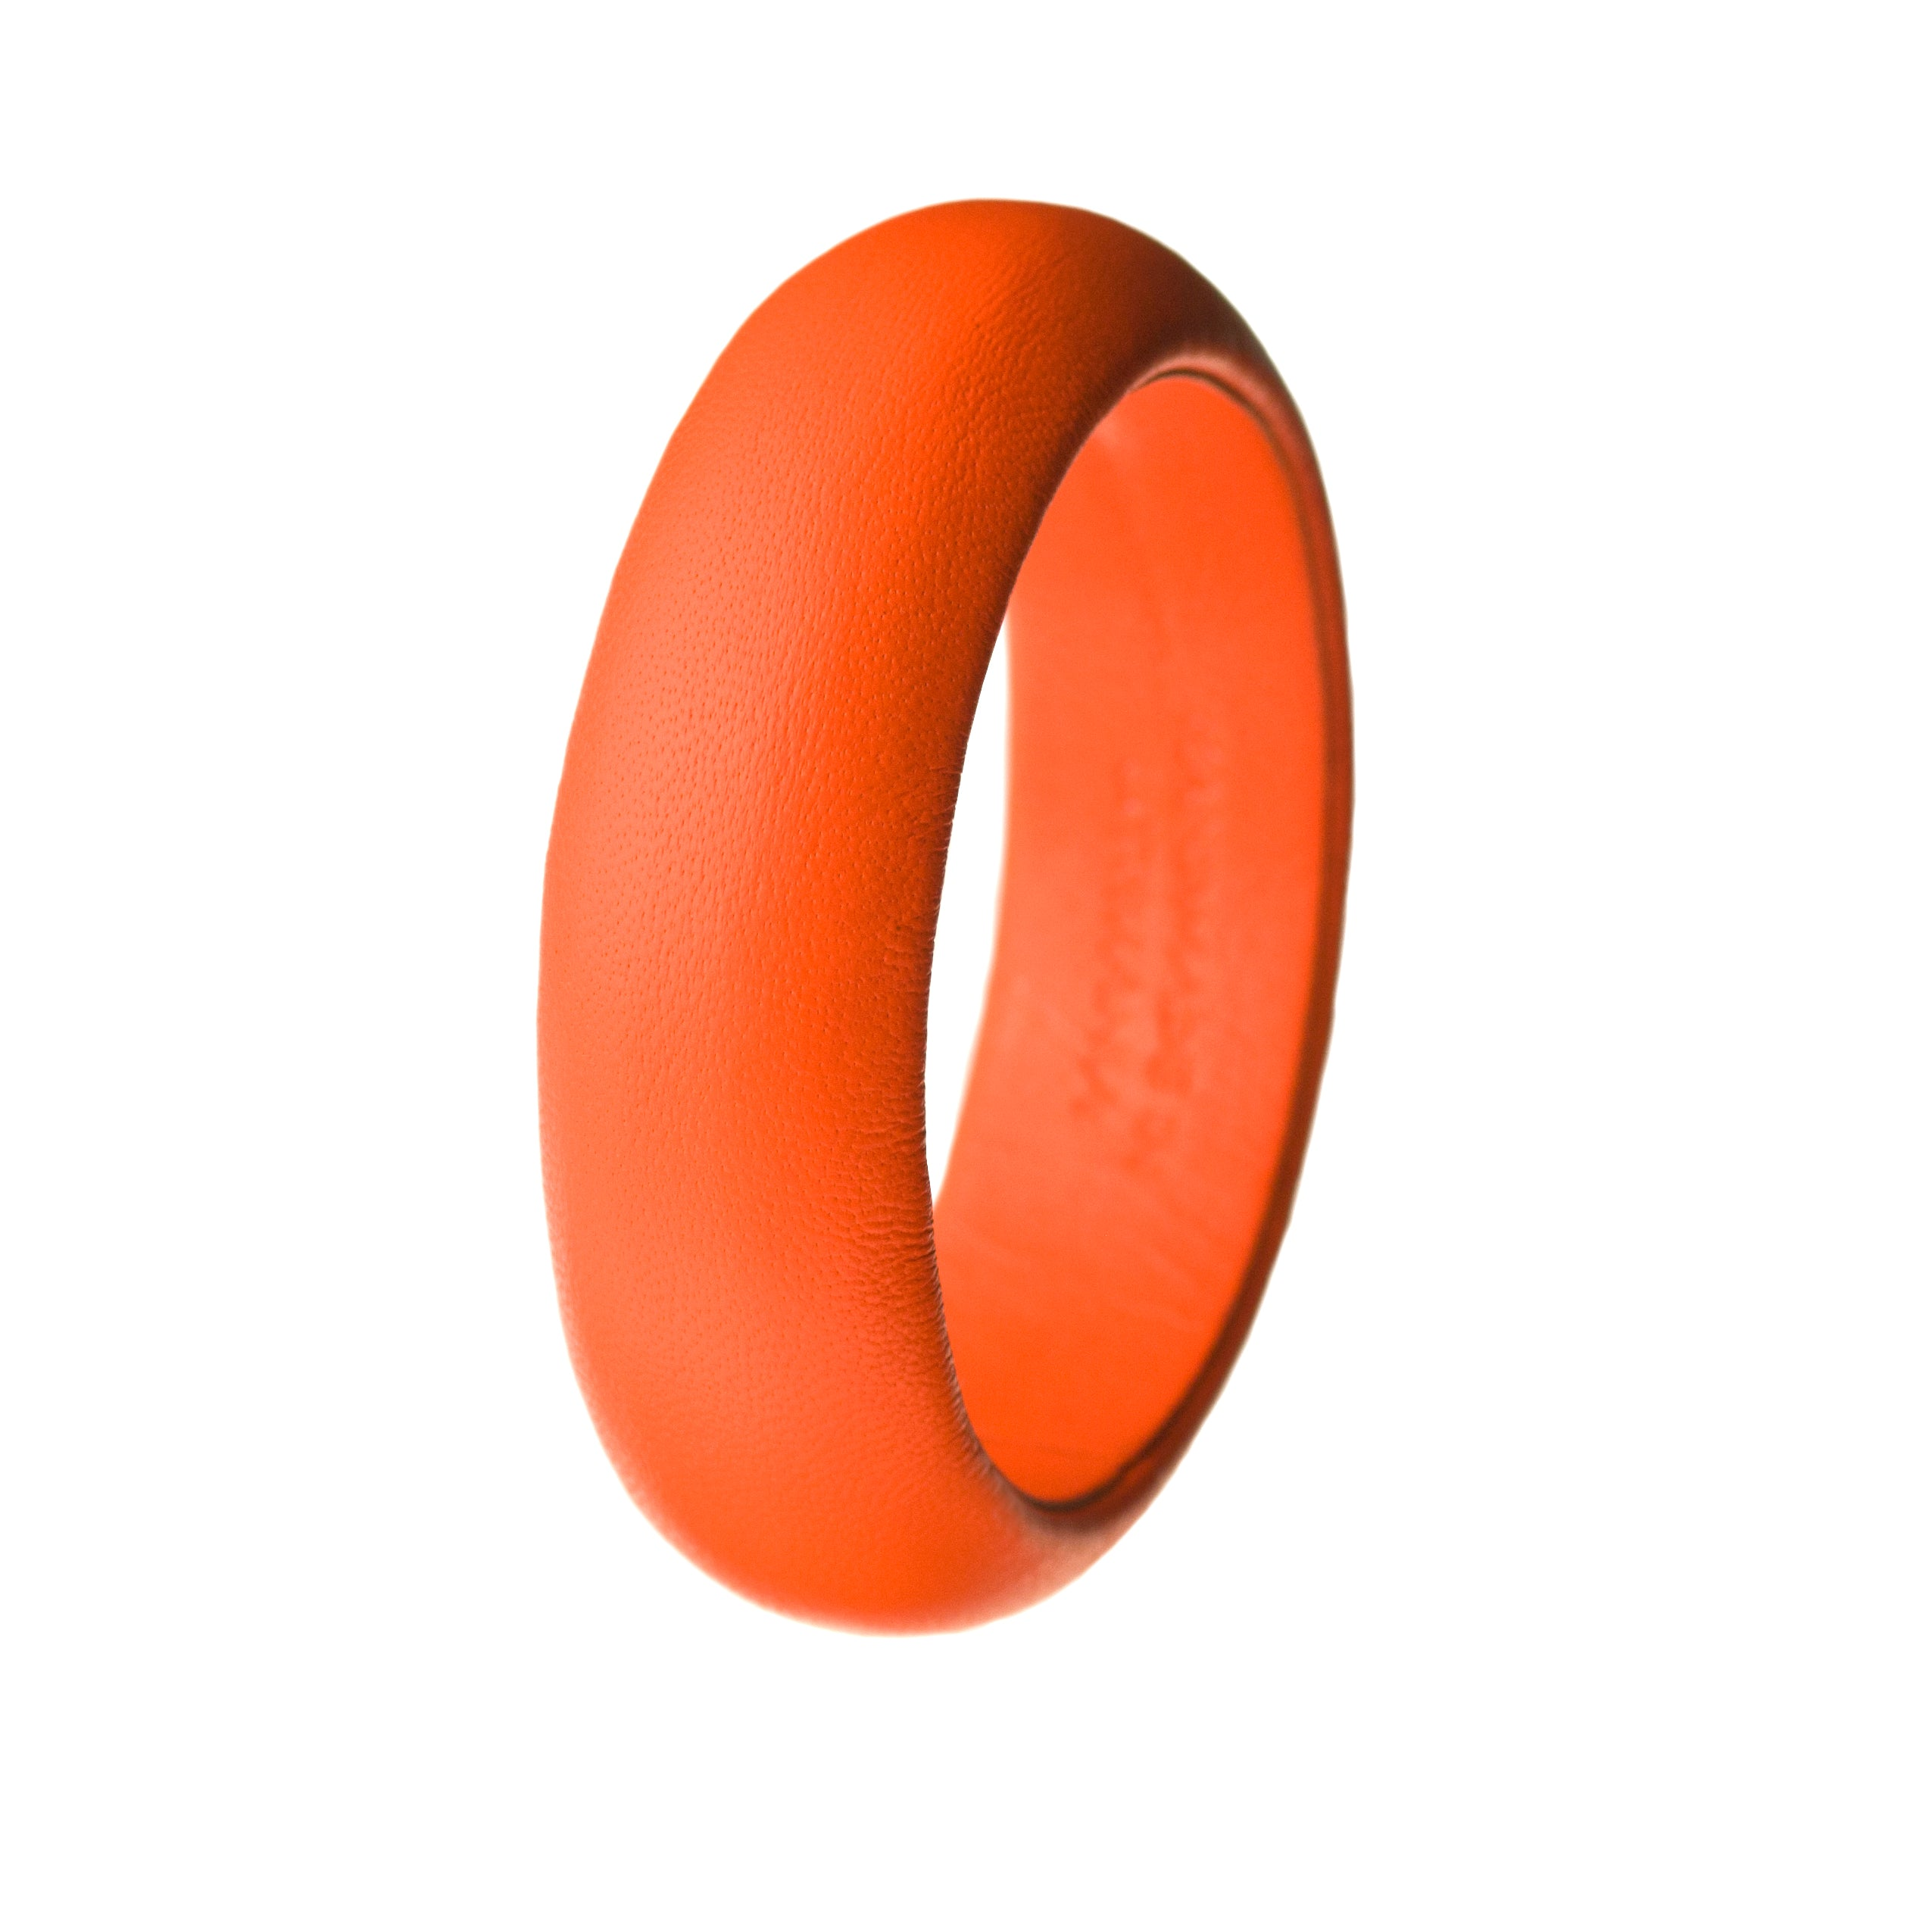 The Emma ~ Fluorescent Neon Orange Lambskin Leather Medium Bangle